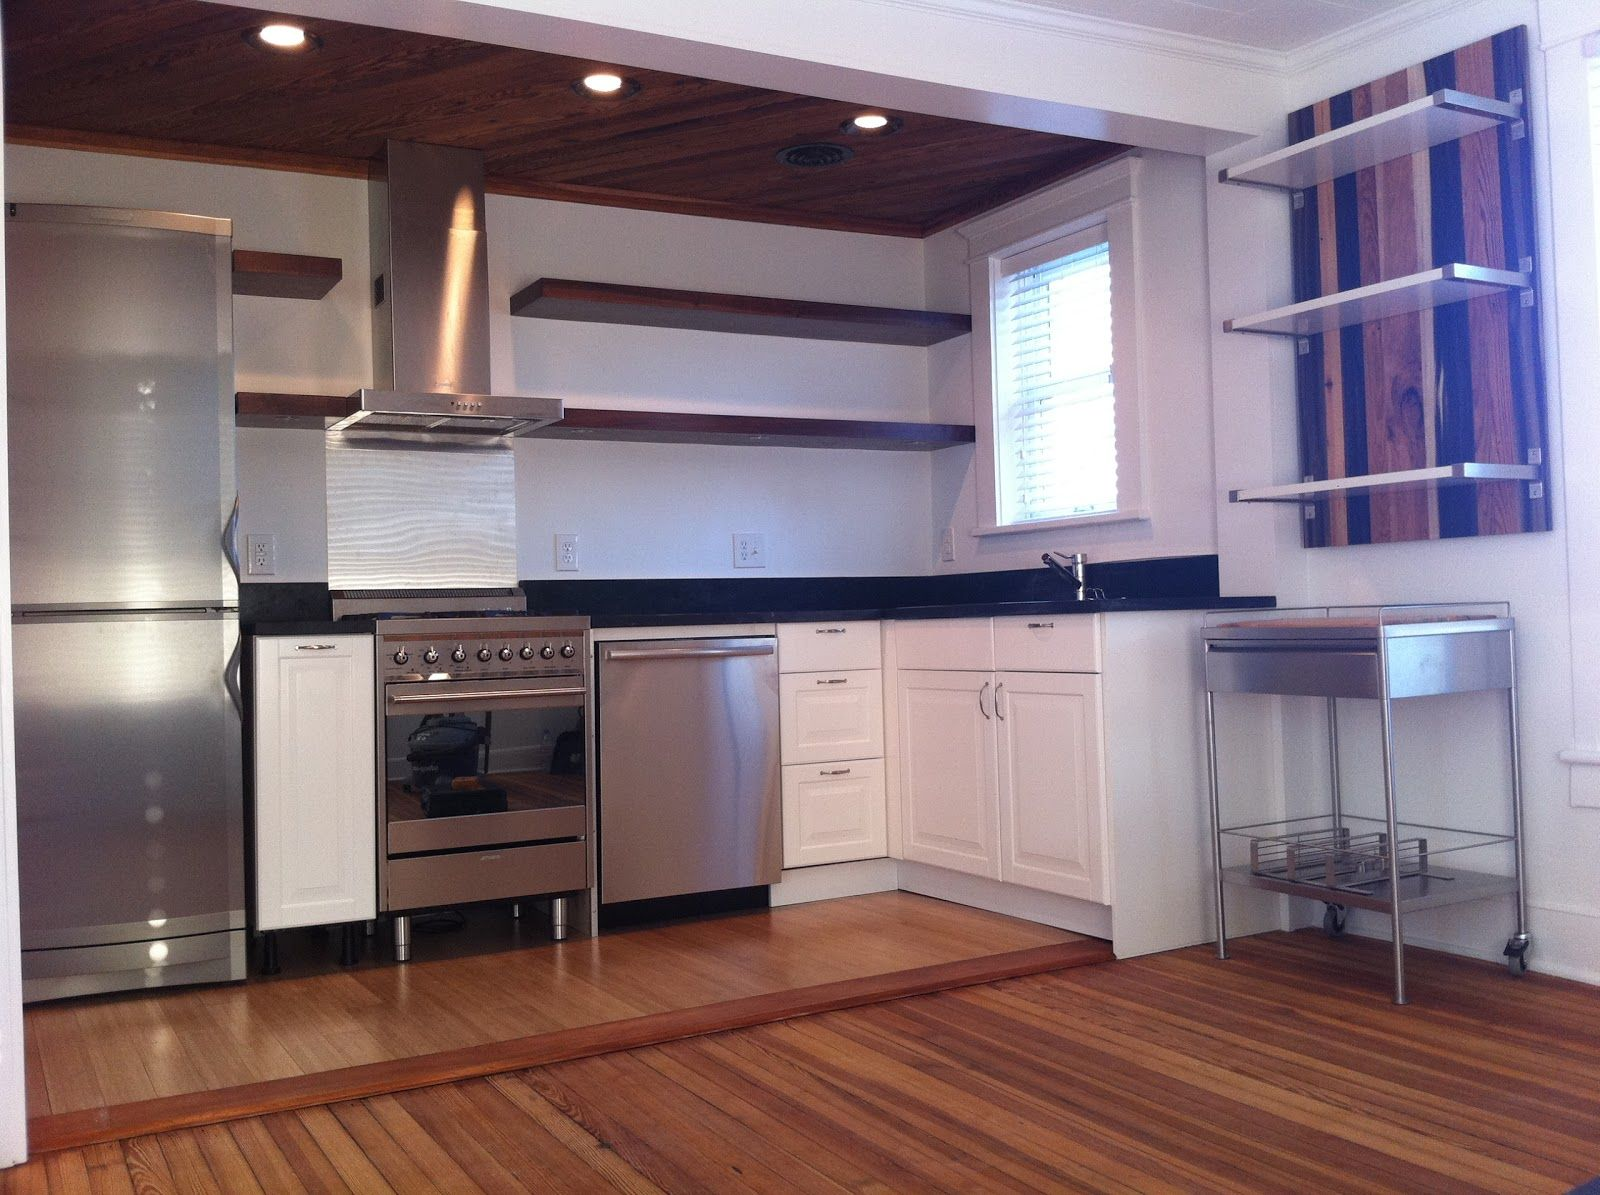 Stainless Steel Kitchen Shelves Ikea Kitchen Cabinets For Sale Metal Kitchen Cabinets Used Kitchen Cabinets